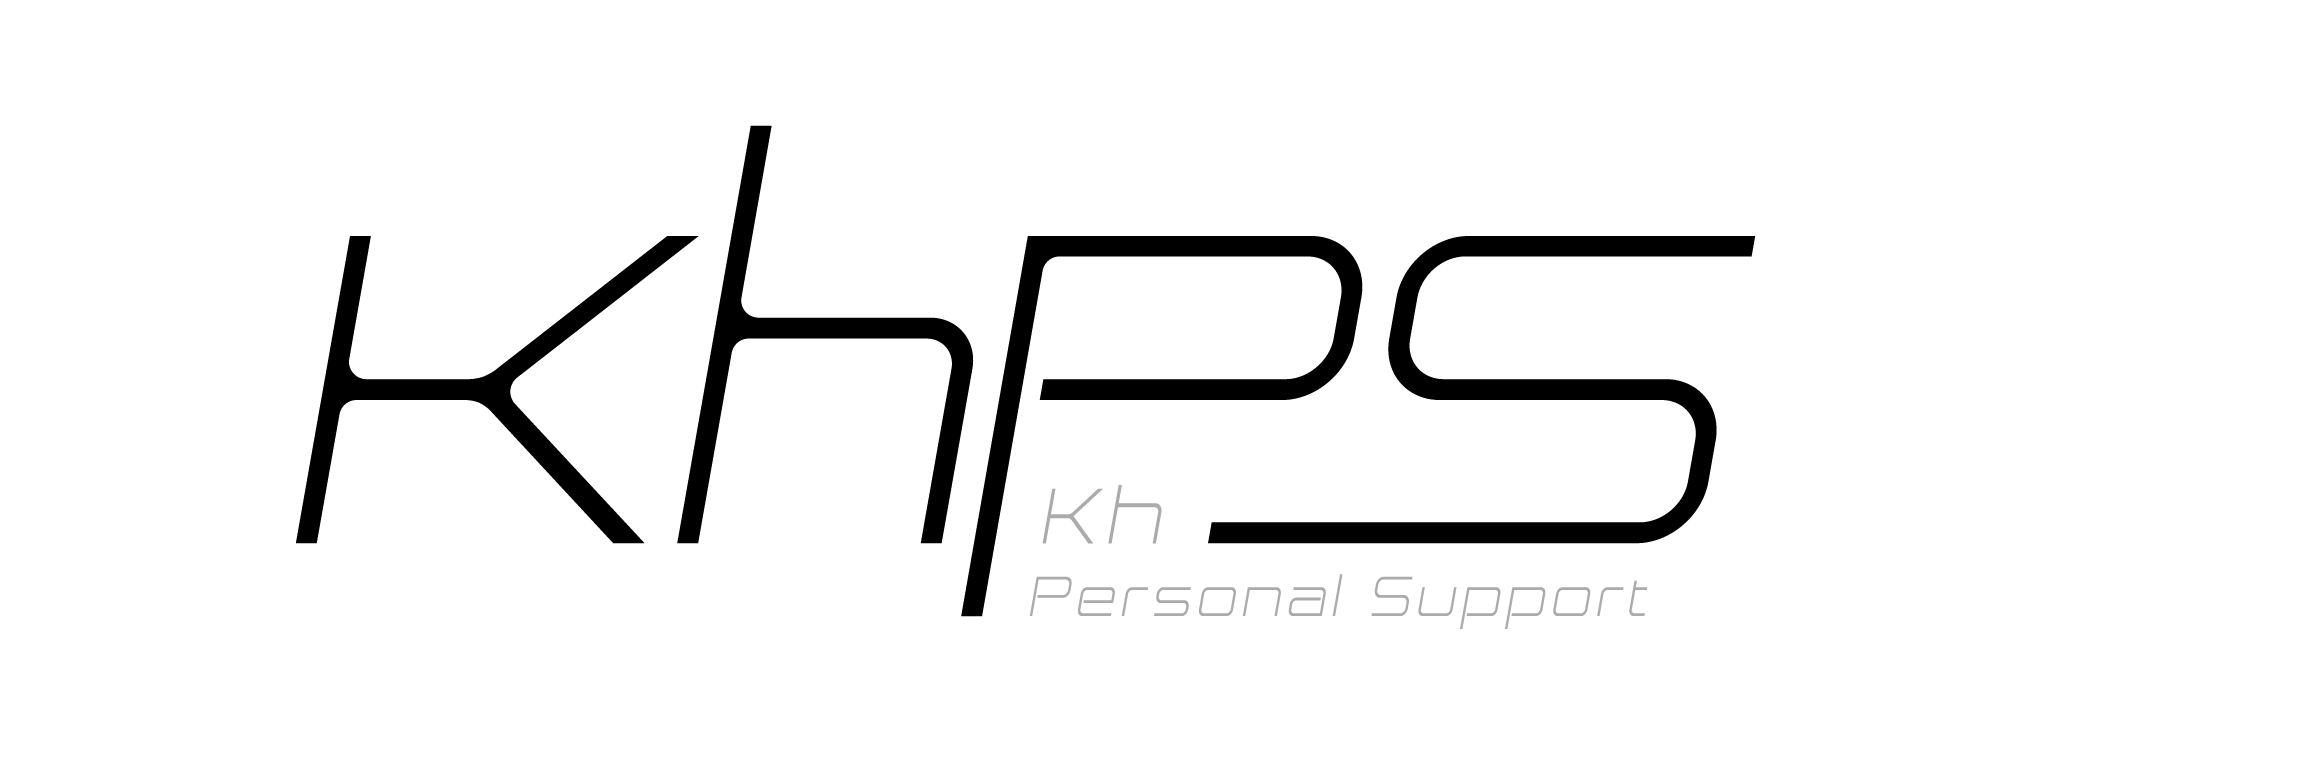 kh personal support